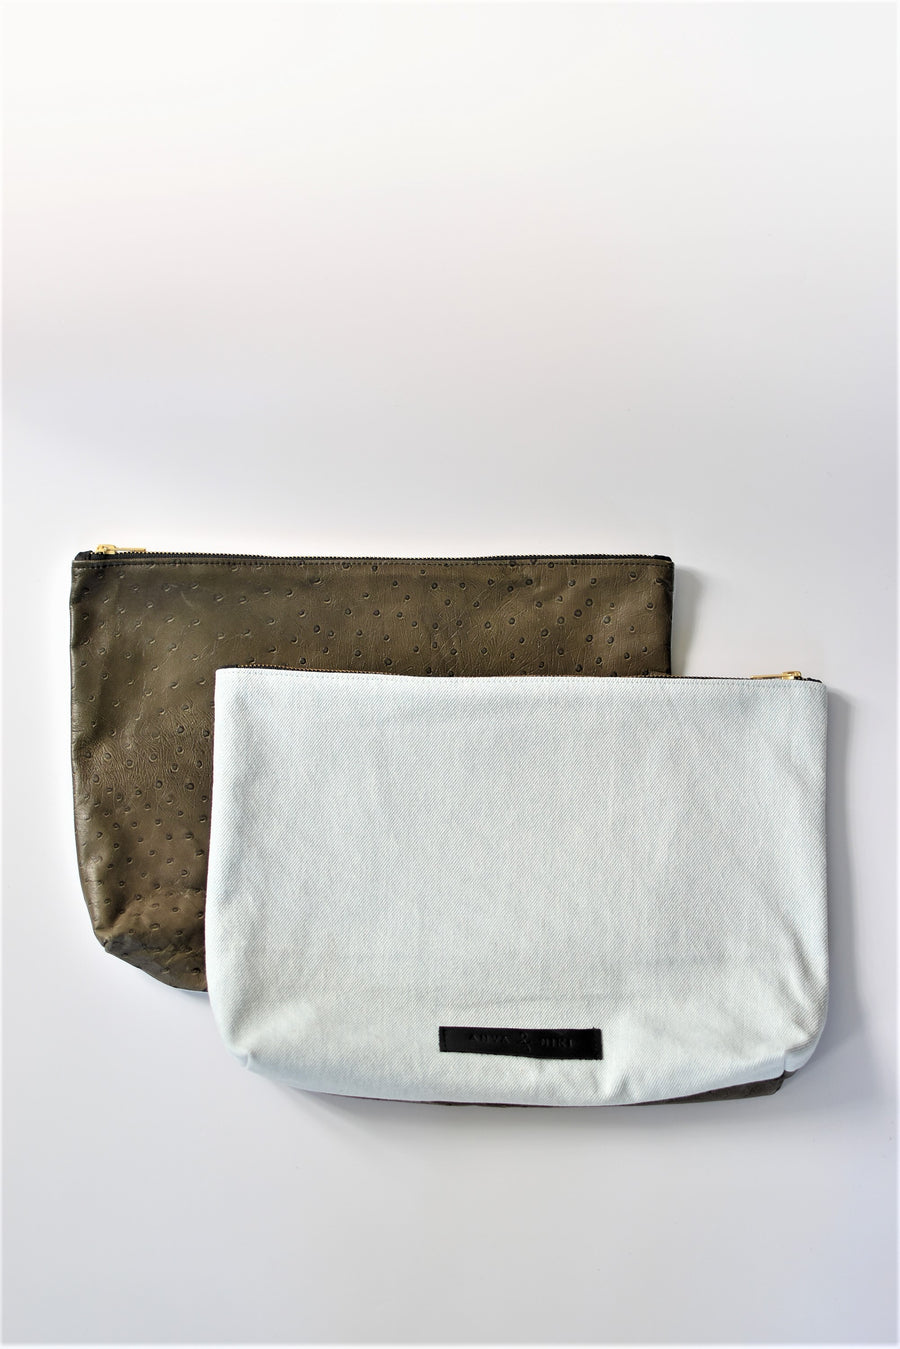 Bleached denim and fern colored embossed leather skin large pouch with brass zipper and leather logo label.